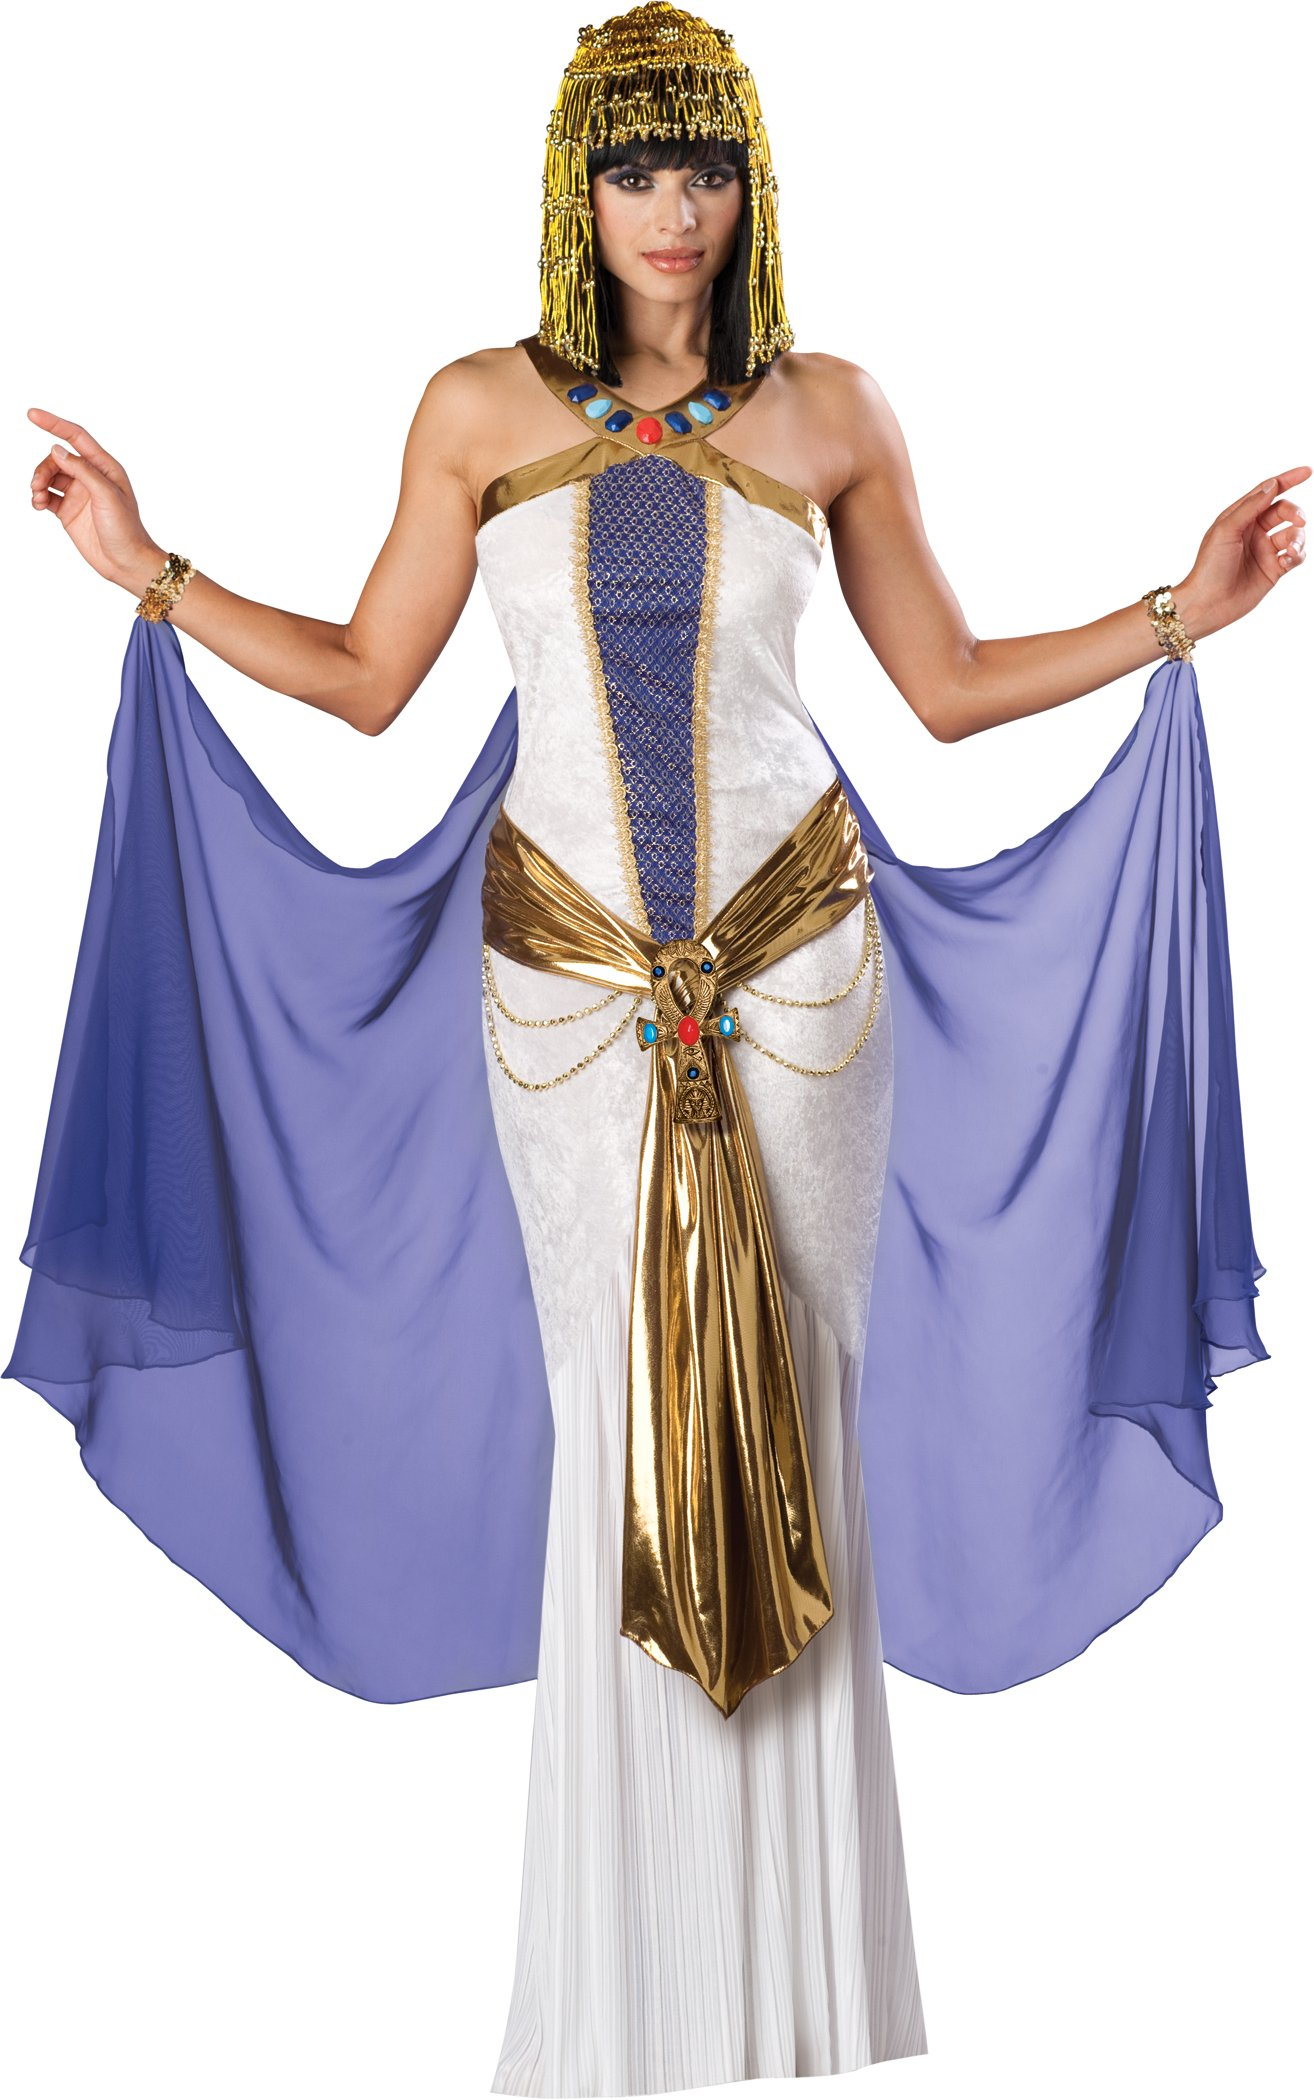 Sexy Cleopatra Egyptian Goddess Queen Halloween Costume | eBay